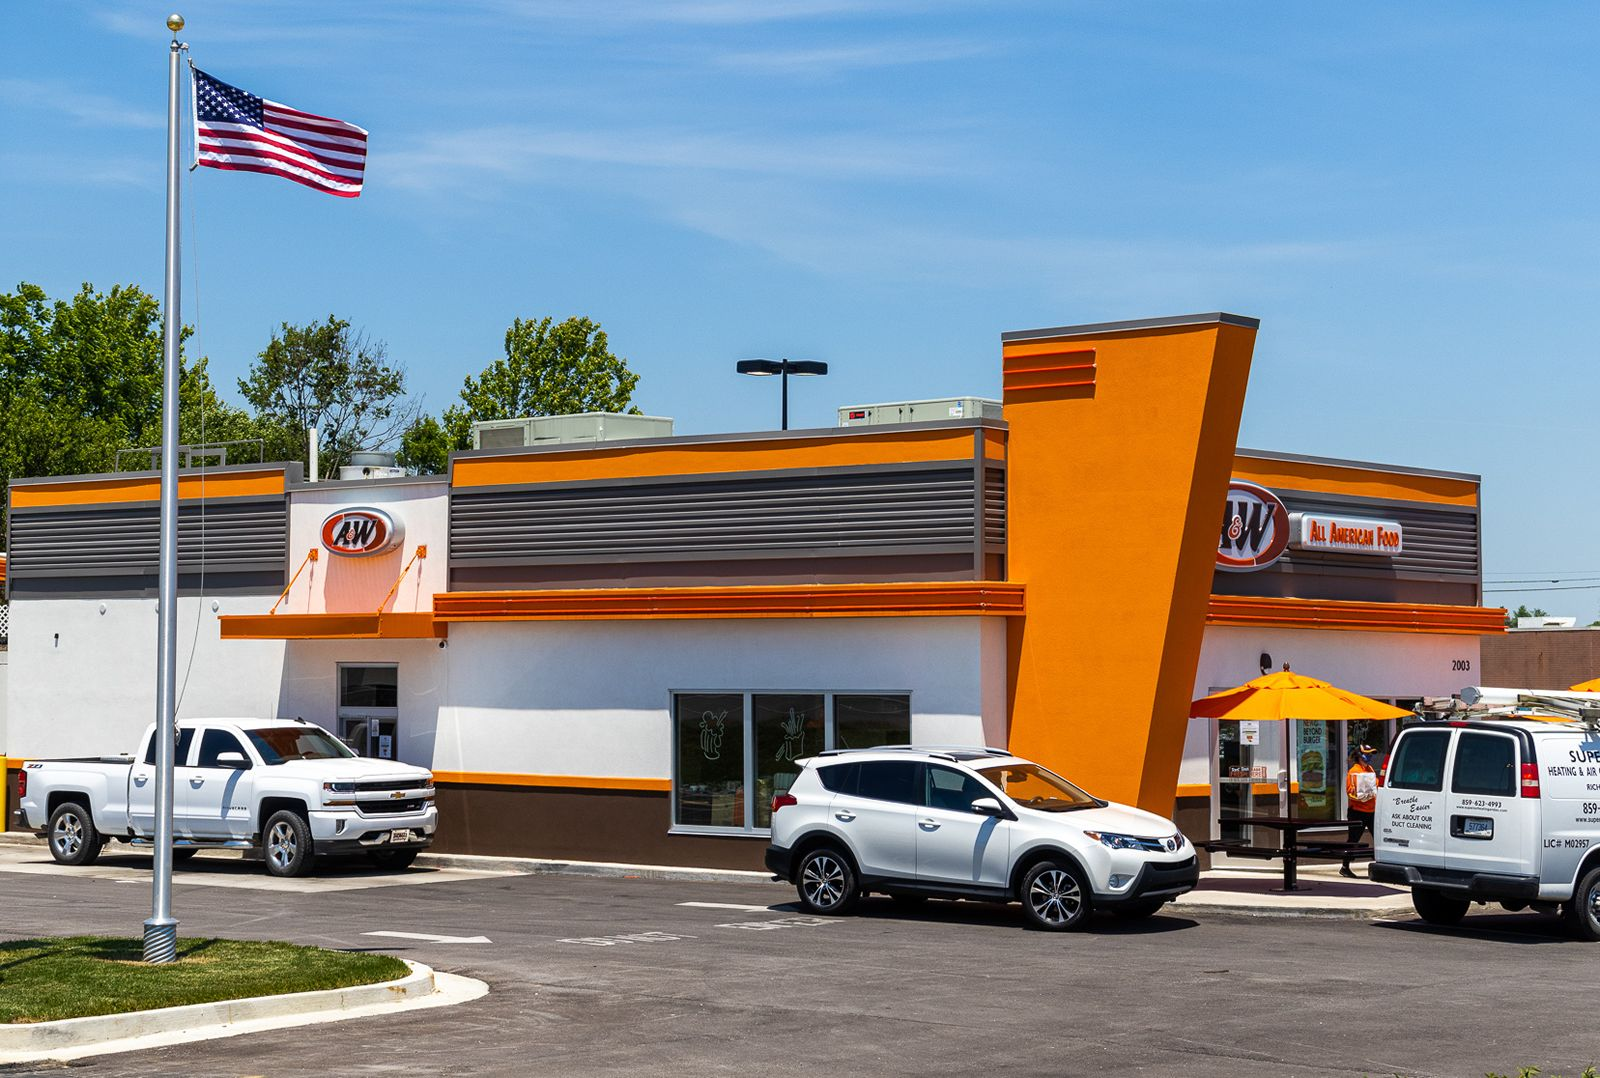 A&W has 16 new restaurants in development, with 10 being built by new franchisees. It has opened 12 in the last 18 months, including this new prototype in Richmond, Kentucky.